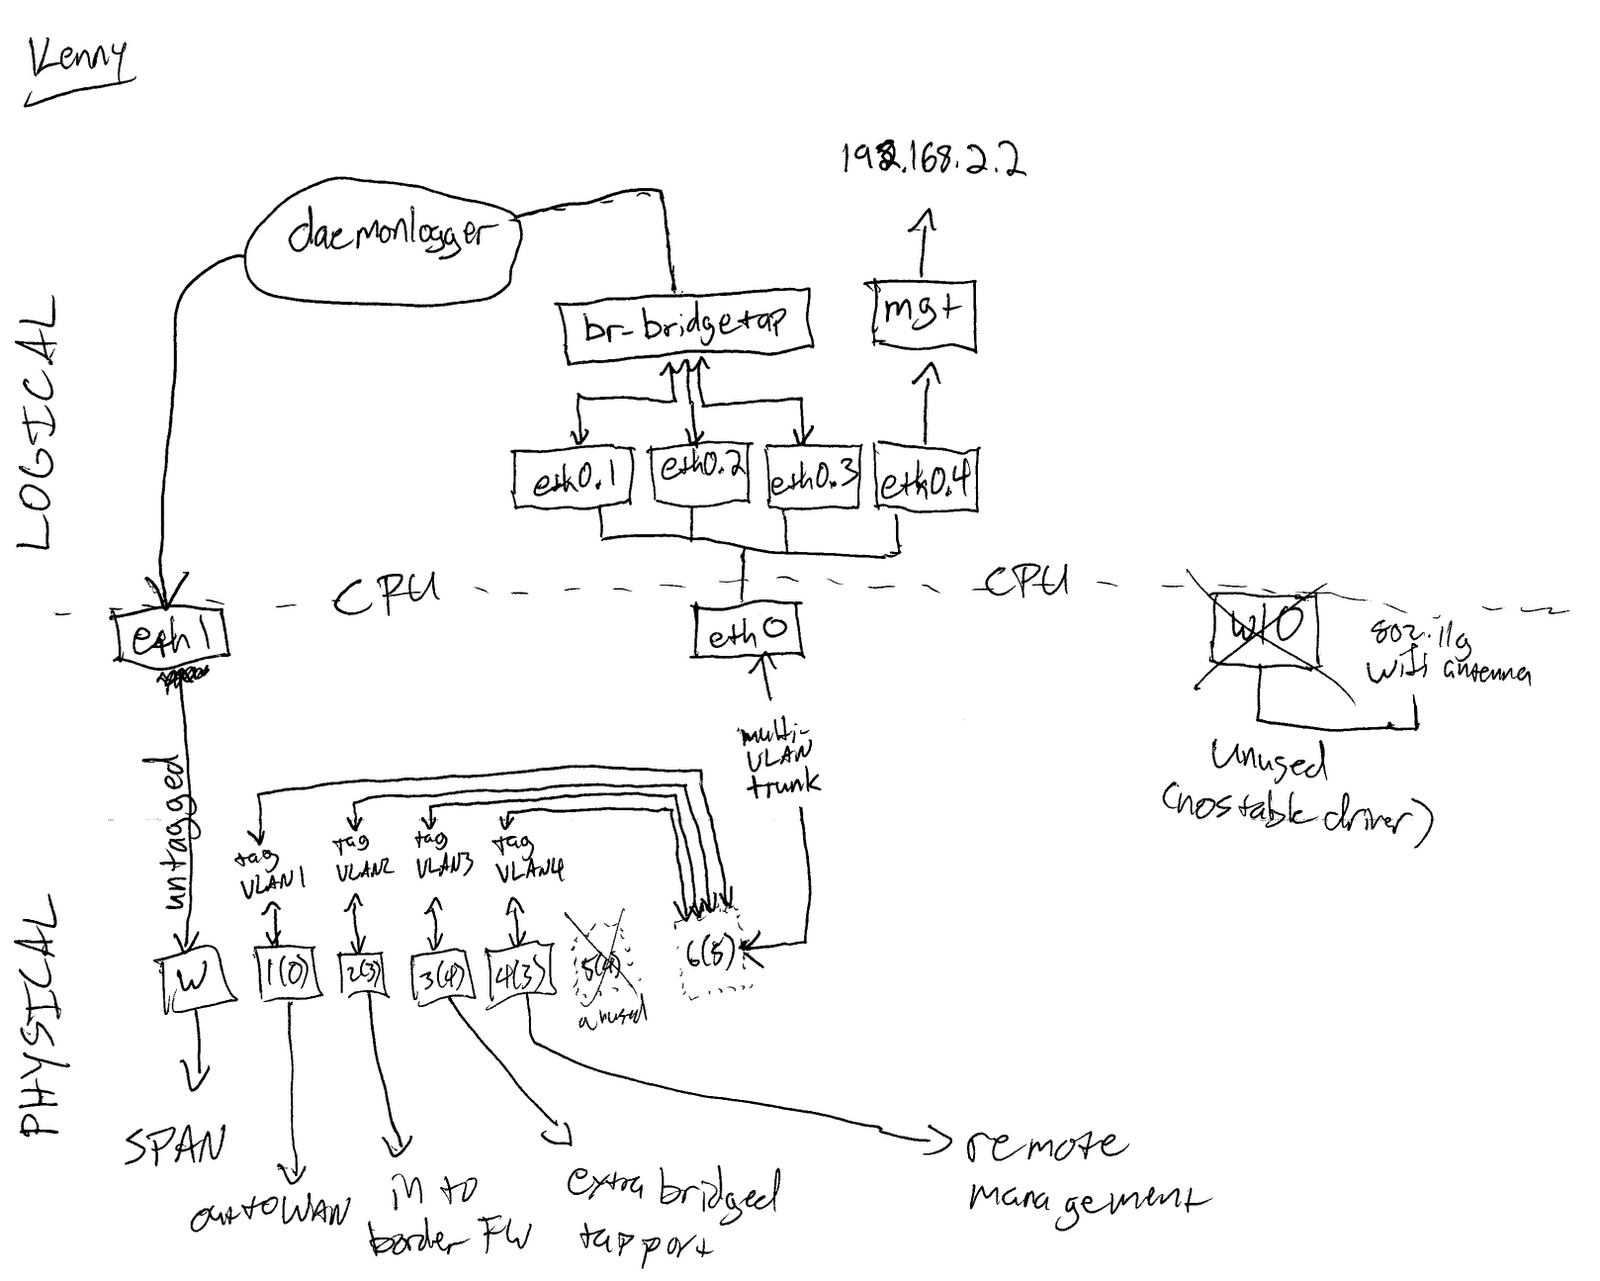 vin sec wrt span block diagram rough draft OpenWrt Wireless Firmware vin sec